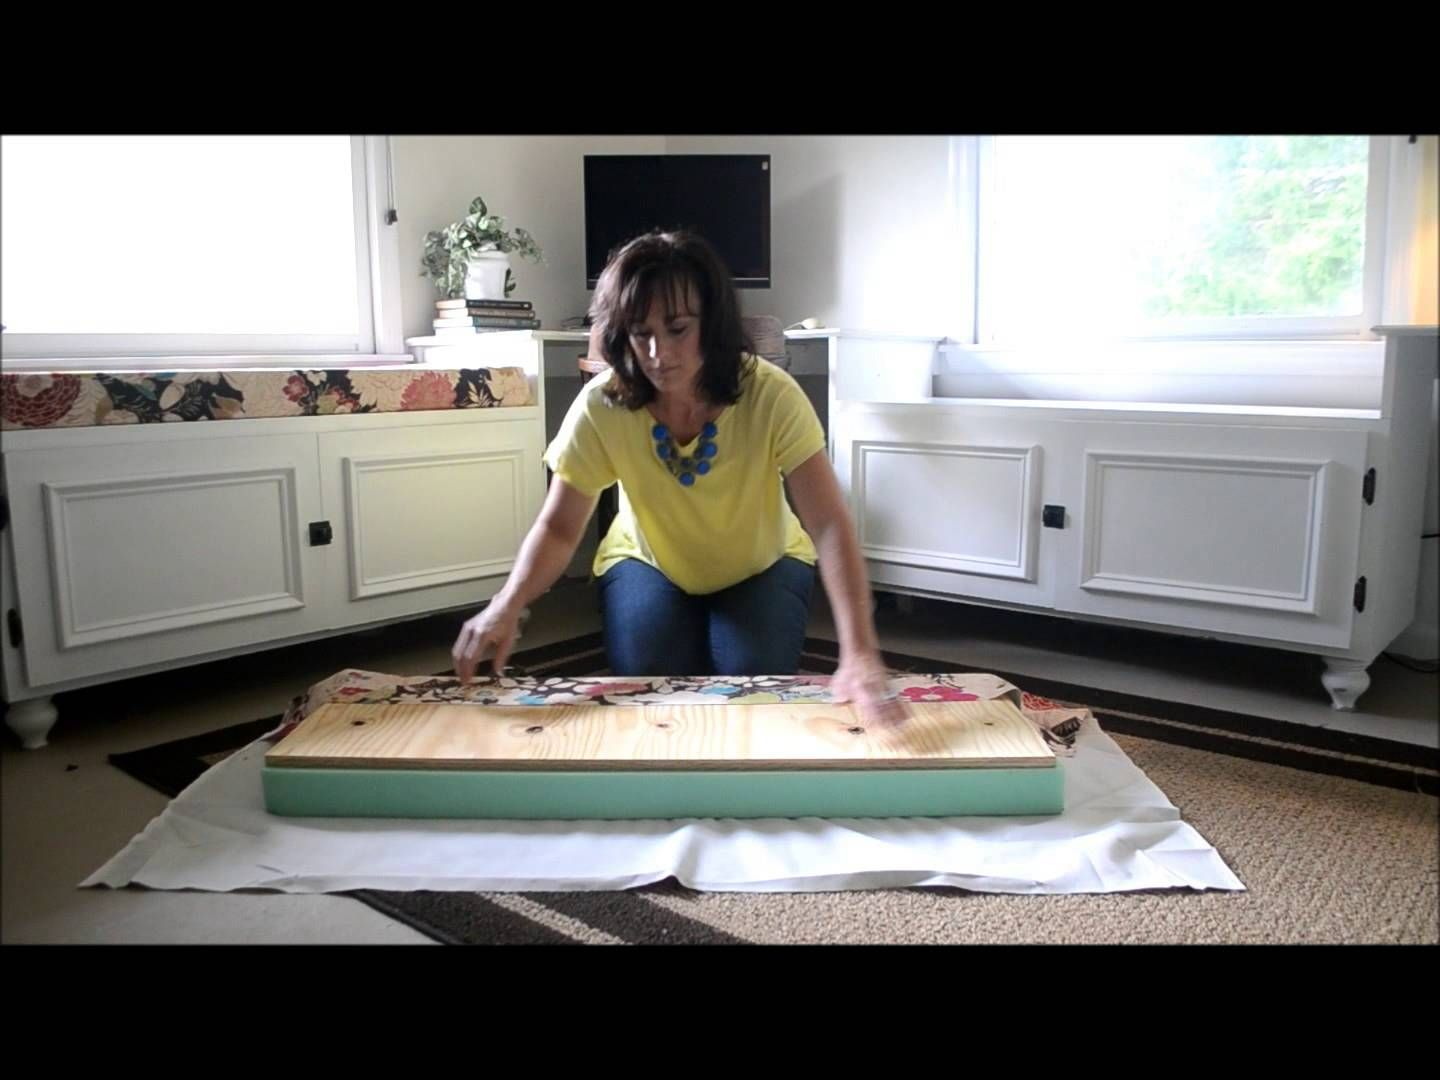 Superb How To Make A Window Seat Cushion Part - 12: How To Make A Window Seat Cushion. Get A Movable Chest With Sides To Put A  Cushion On Top Of And Pillows. A Nice Little Nook In A Room!